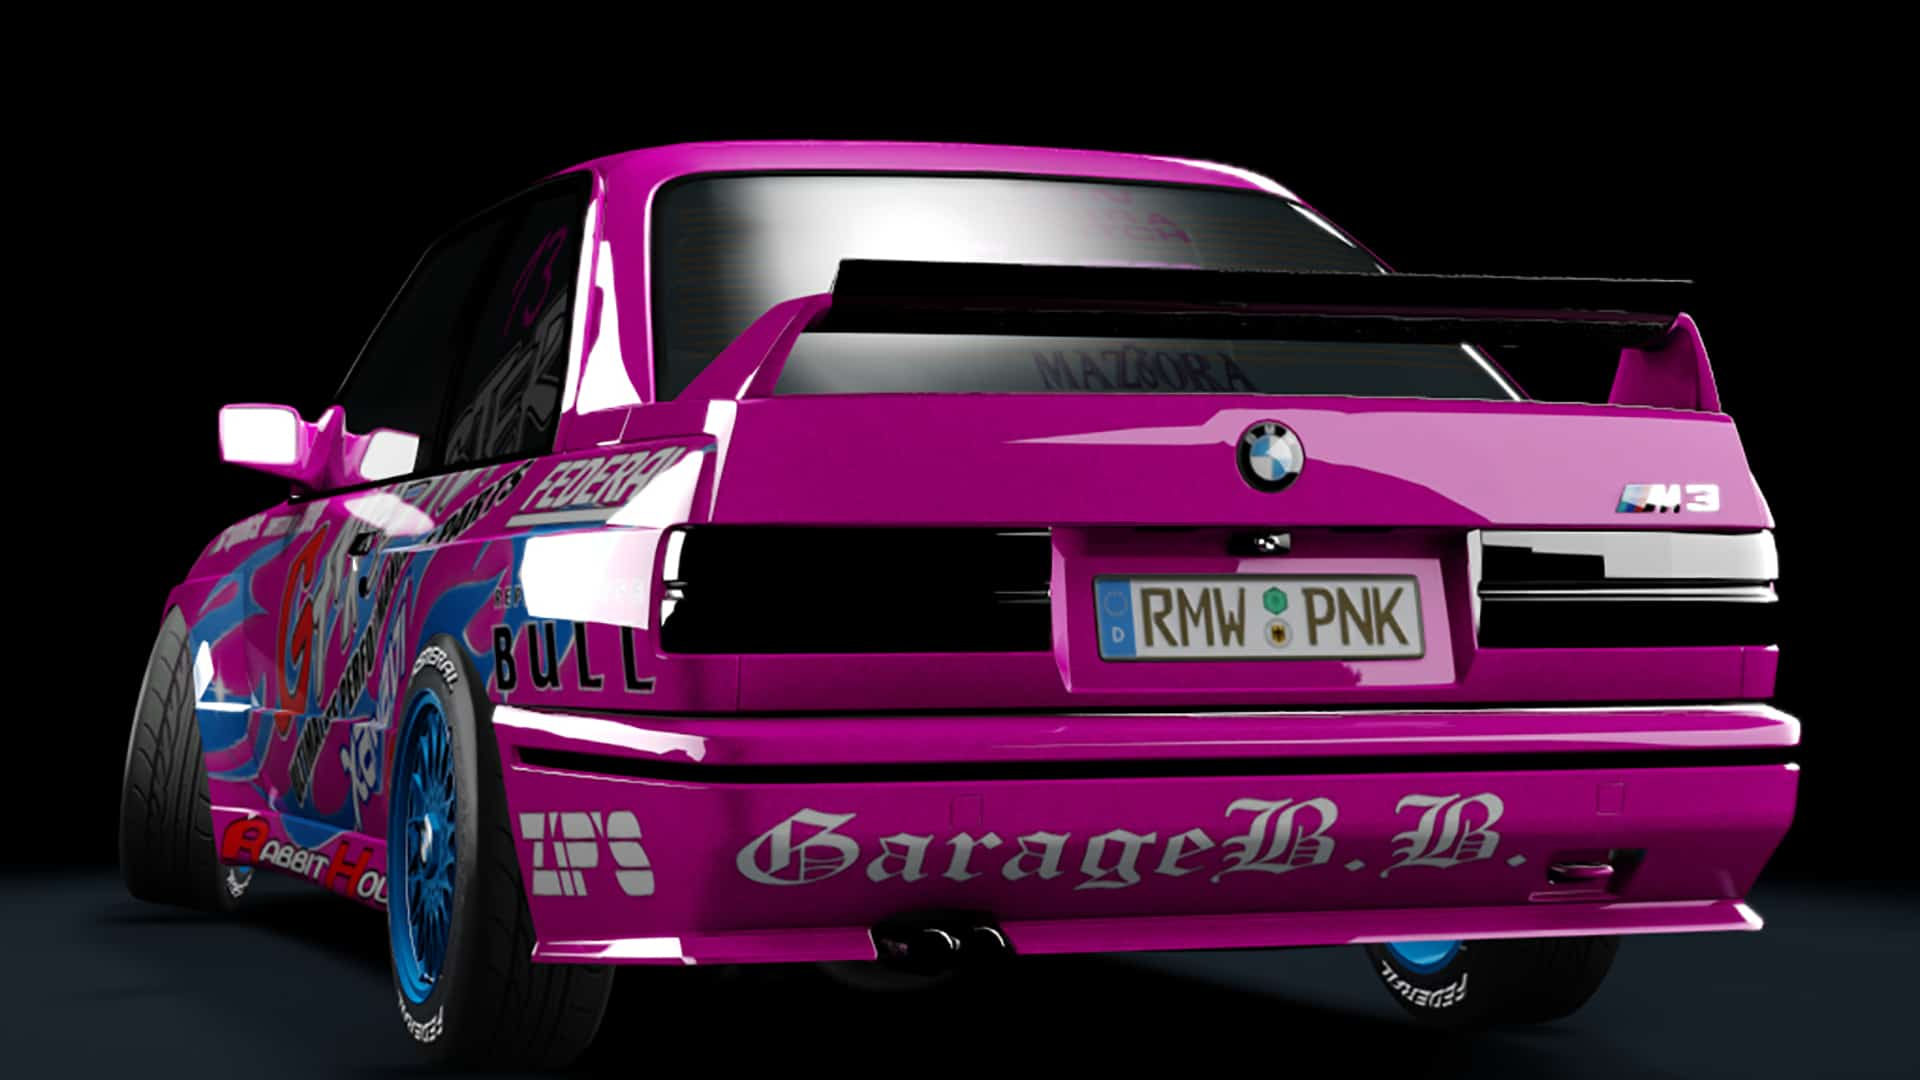 assetto-corsa-bmw-e30-m3-rmw-pnk-rear-low